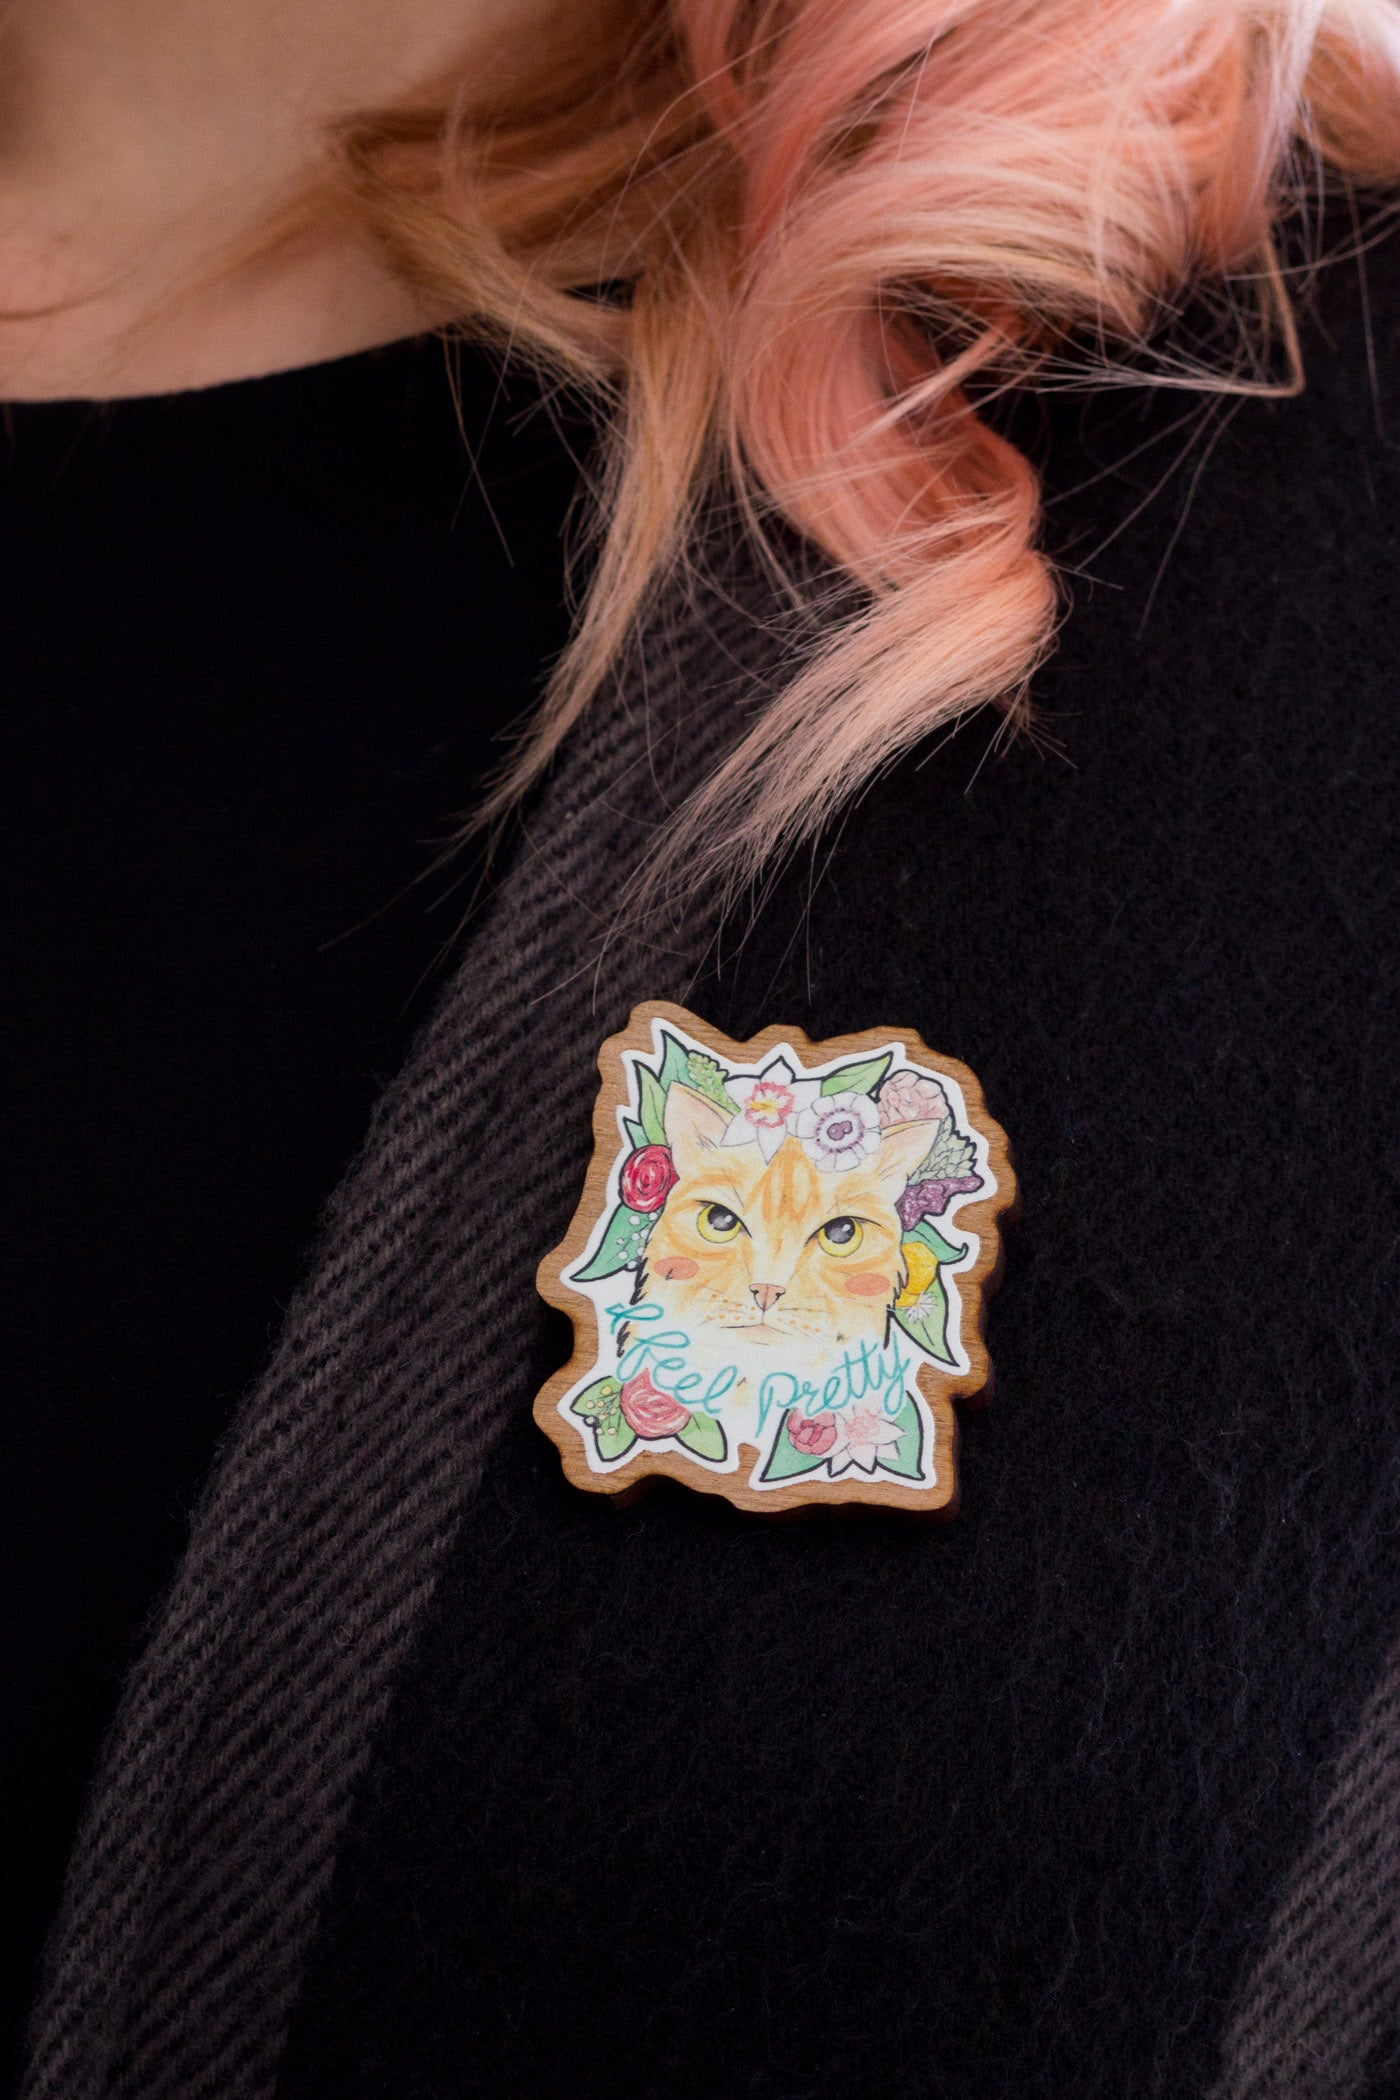 I Feel Pretty // Ginger Cat with Flowers Wooden Brooch - A Rose Cast